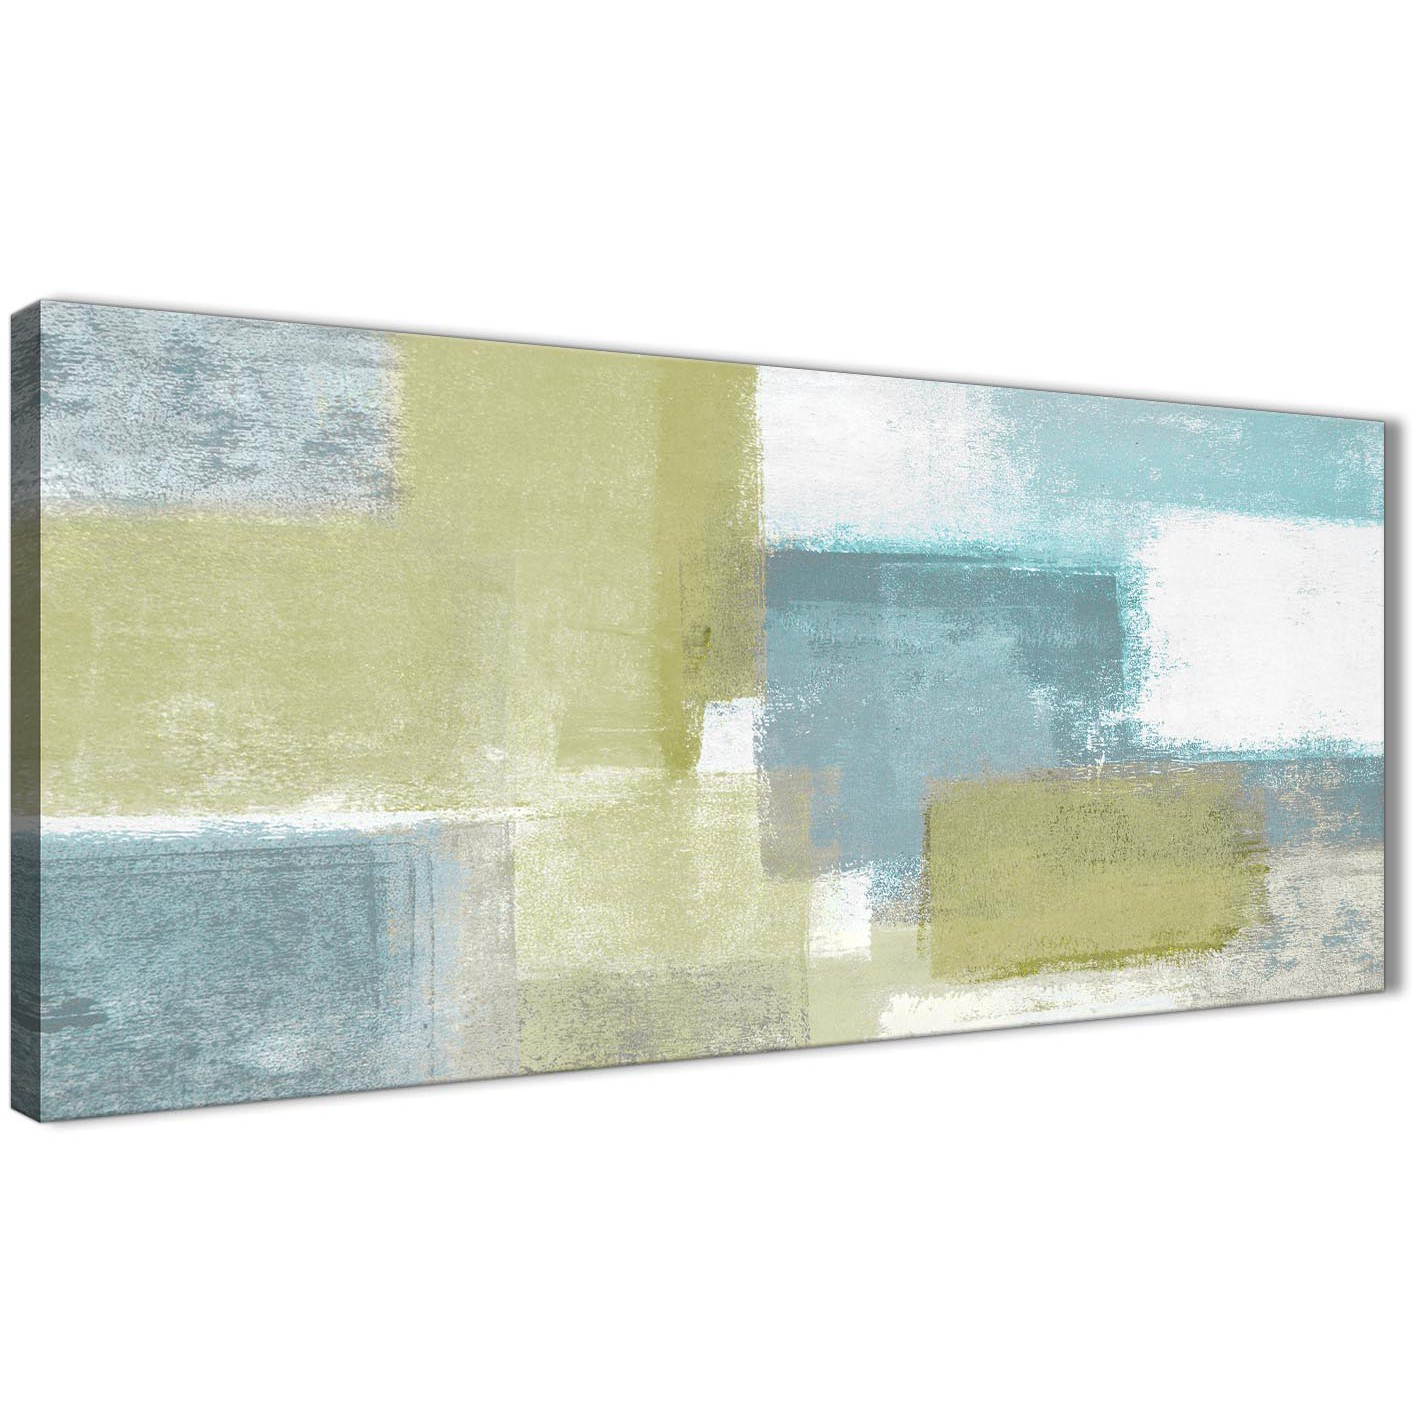 Lime Green Teal Abstract Painting Canvas Wall Art Print - Modern ...